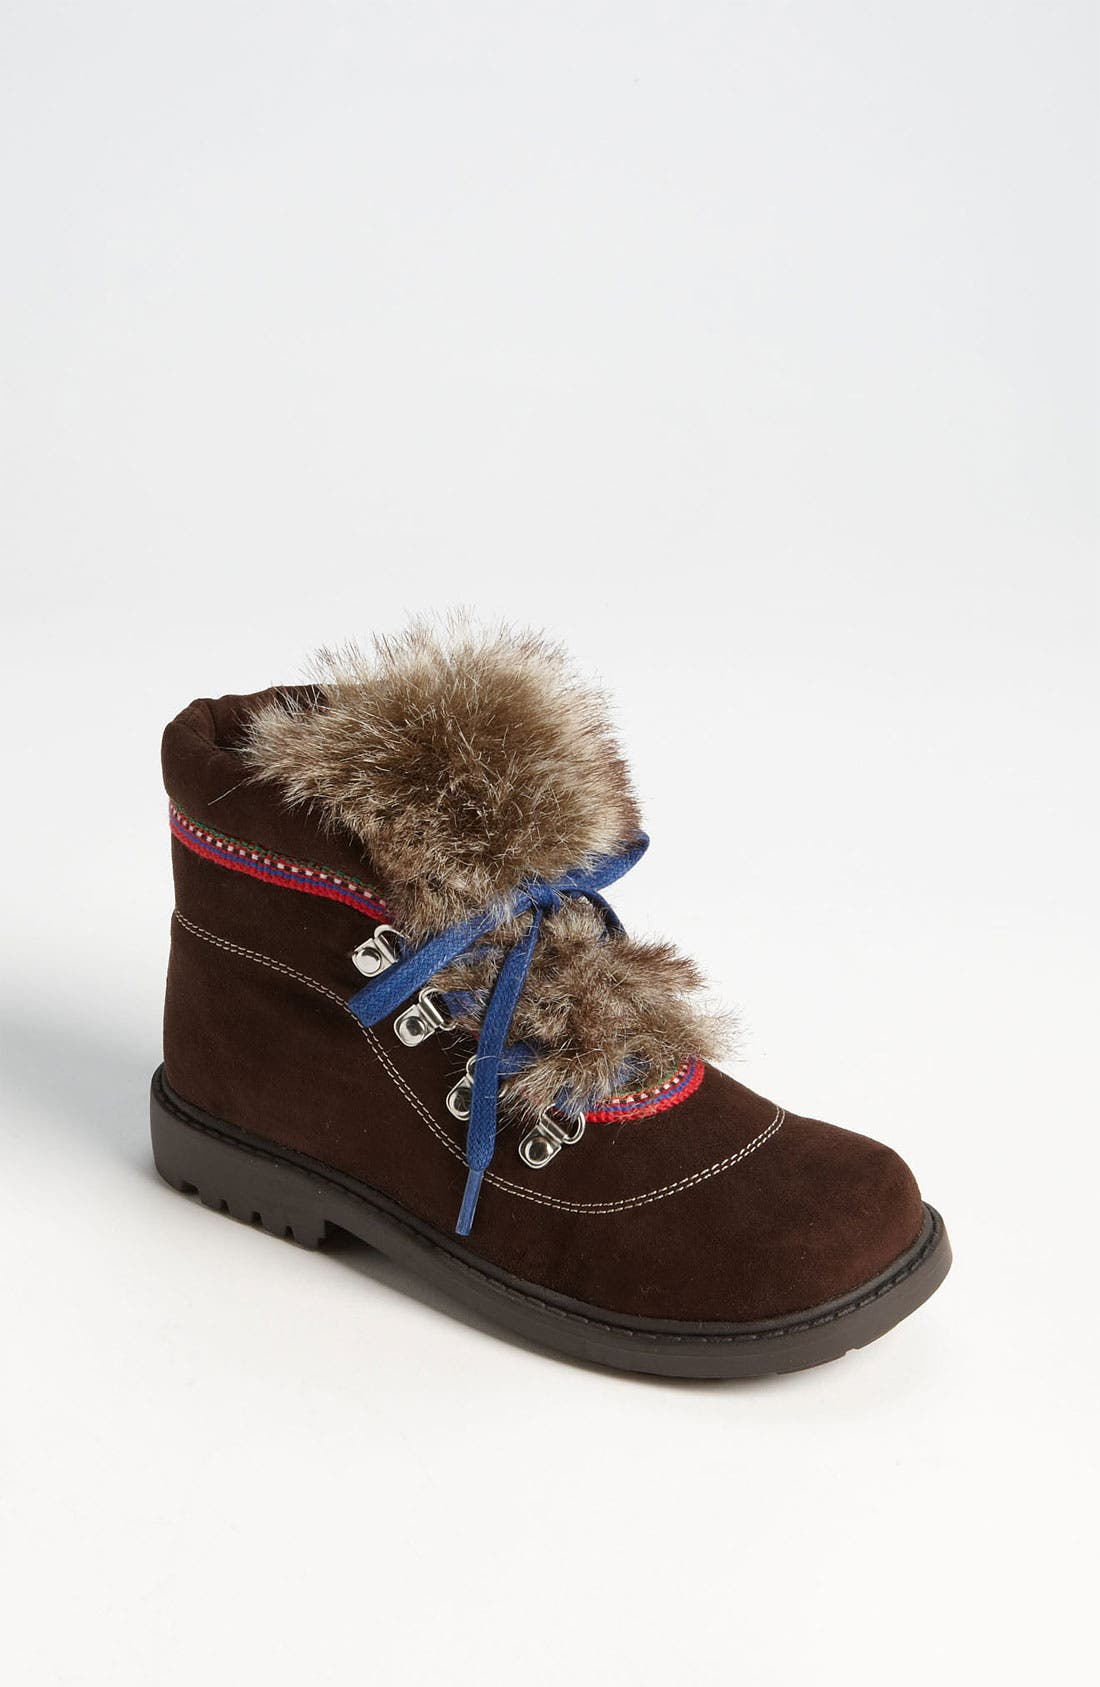 Main Image - Stuart Weitzman 'Doodle' Faux Fur Trim Boot (Walker, Toddler, Little Kid & Big Kid)